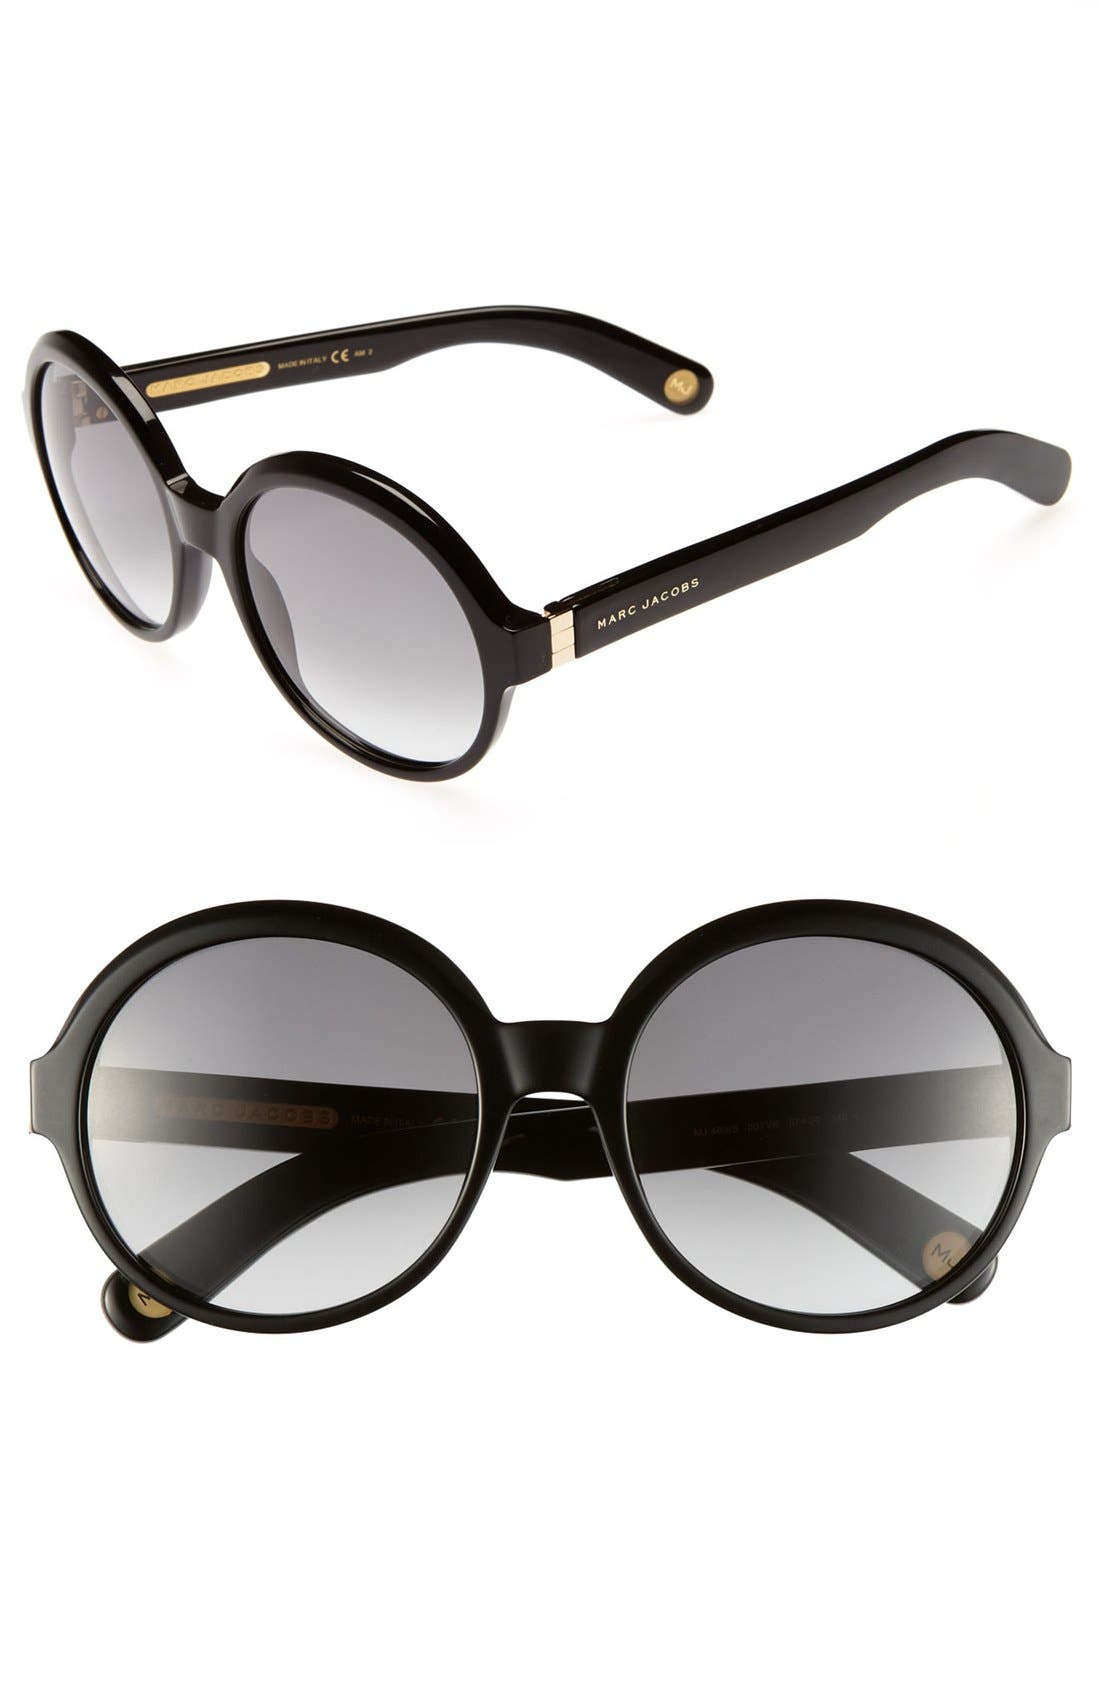 Alternate Image 1 Selected - MARC JACOBS 57mm Retro Sunglasses